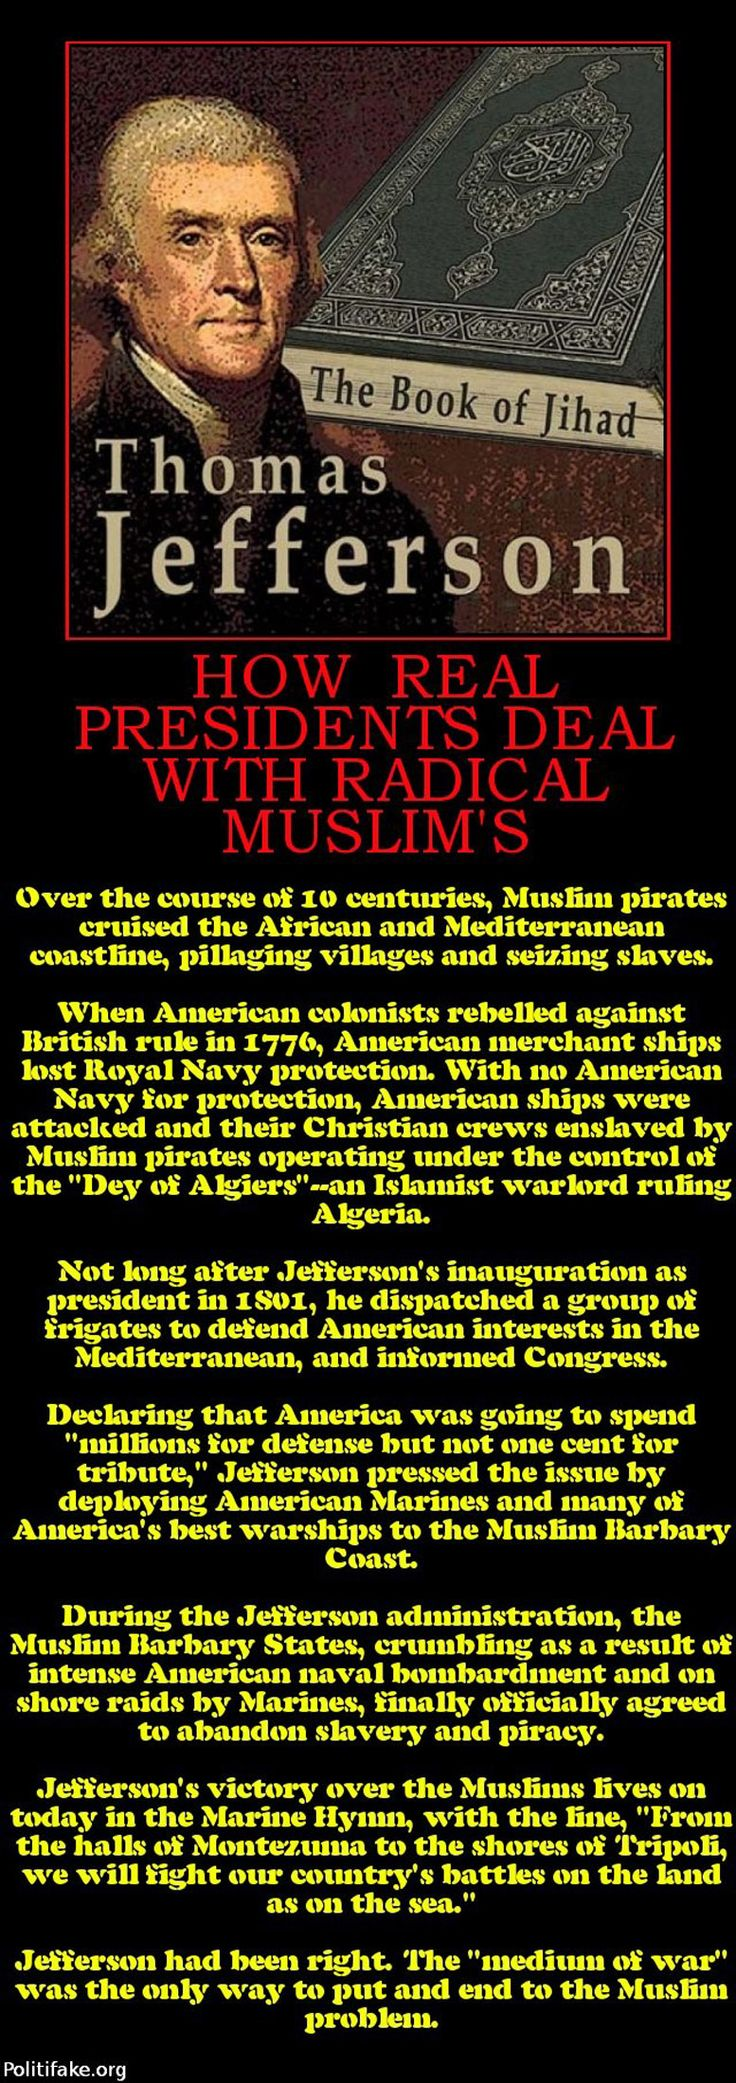 .Thomas Jefferson deals with Muslims... ....and now, we have a president who is cutting military funding??! NOTE Obama said in some of his speeches that Islam had so much to do with the history and building of our nation. This is the only thing that I have found about Islam and the history of our nation. ;-) - THANK YOU, WHOEVER PINNED THIS. I WONDER WHAT THE HISTORY BOOKS WILL SAY ABOUT THIS TIME.